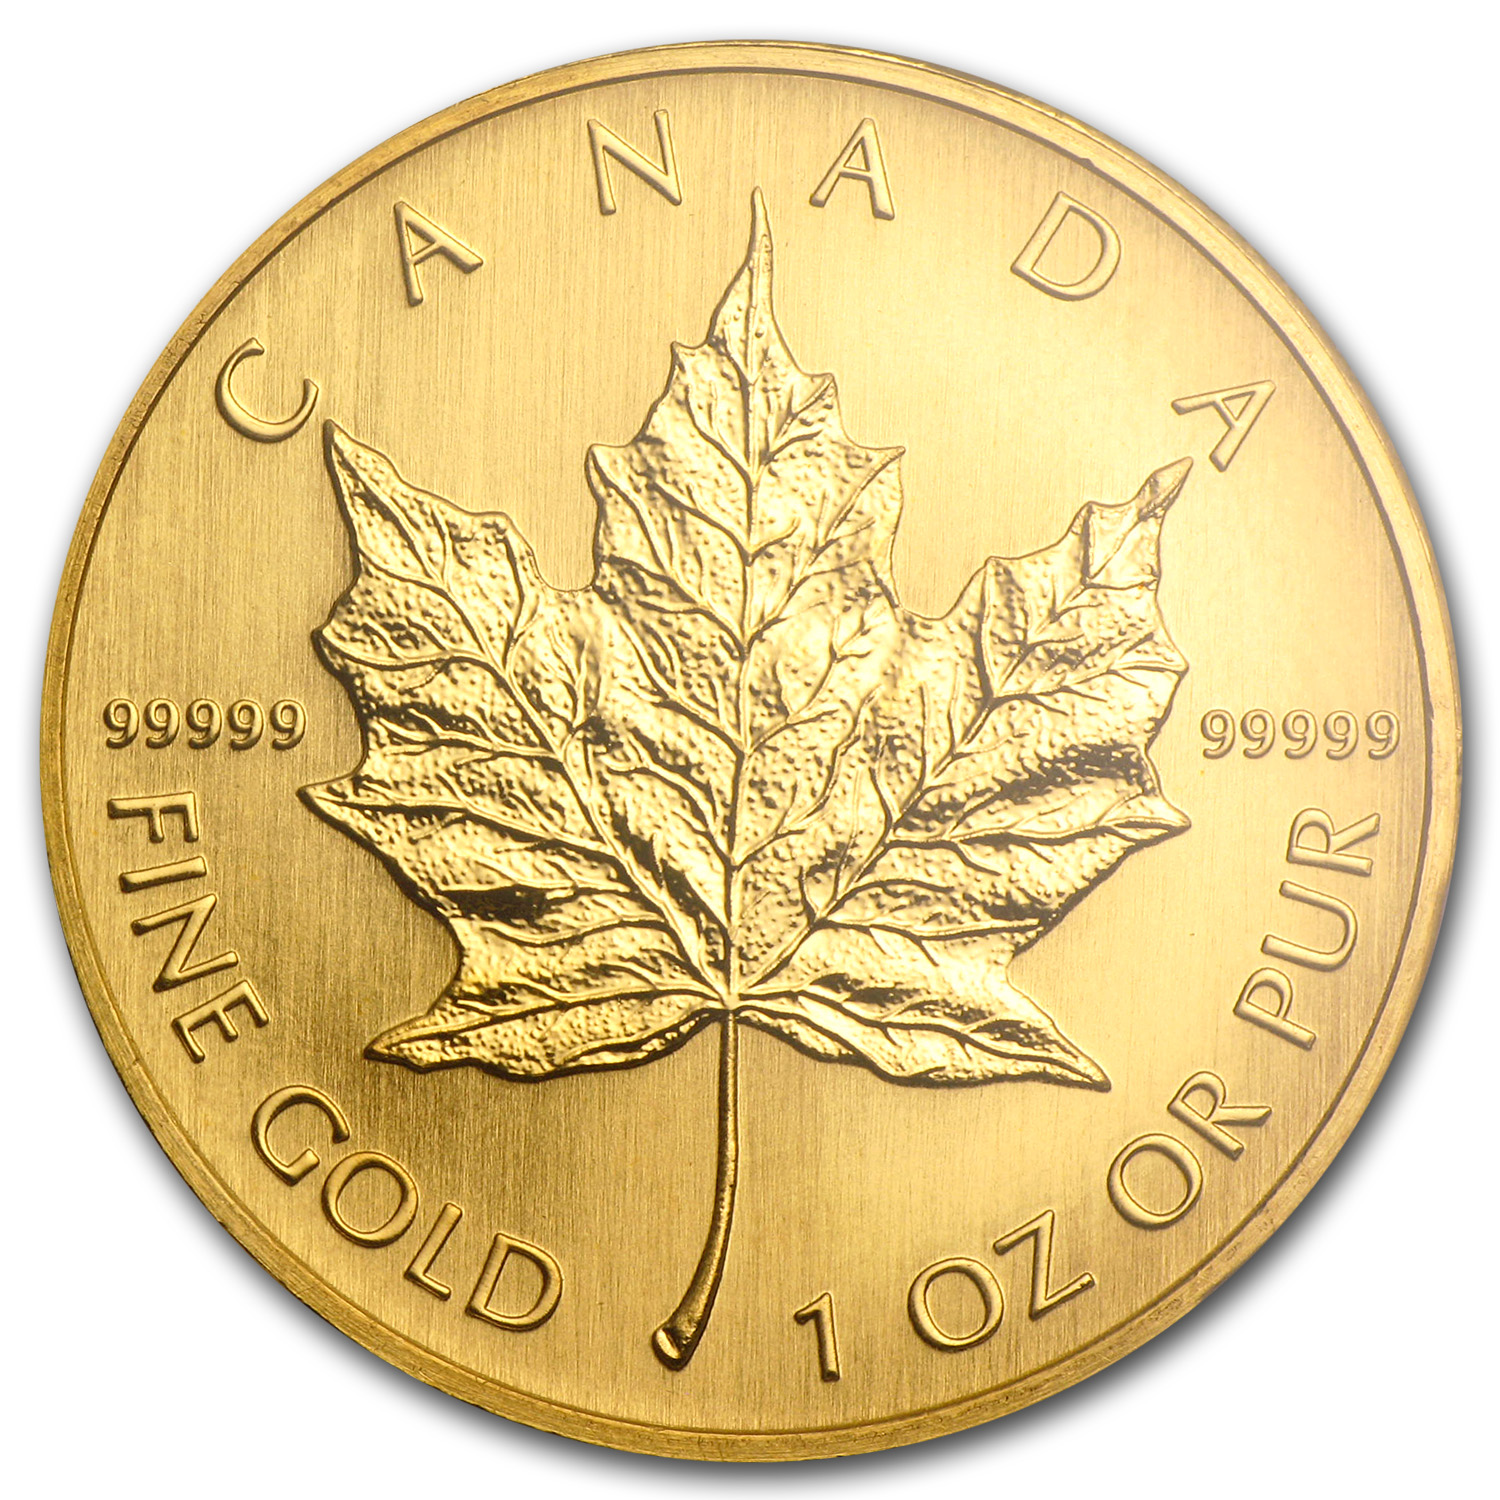 2005 1 oz Gold Canadian Maple Leaf .99999 BU (w/Box & COA)